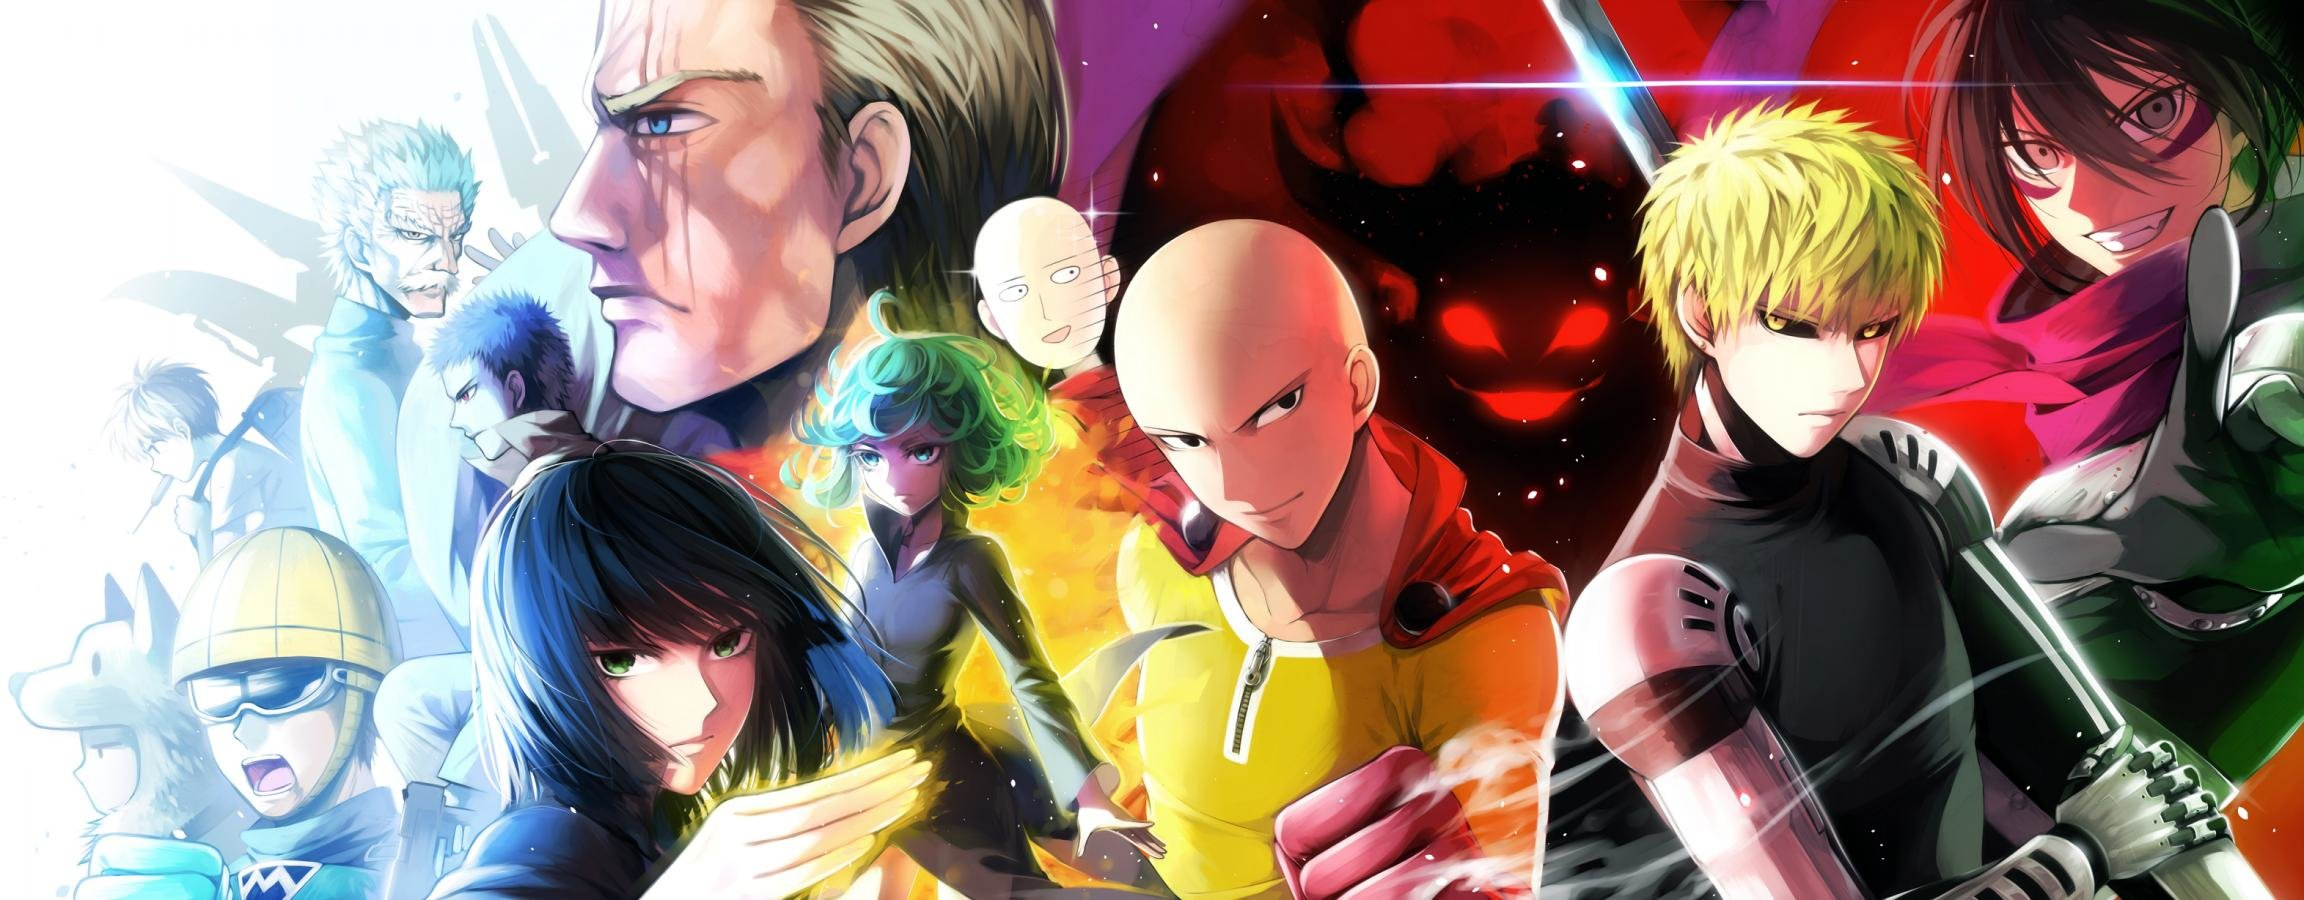 High resolution One-Punch Man dual screen 2304x900 background ID:345302 for desktop